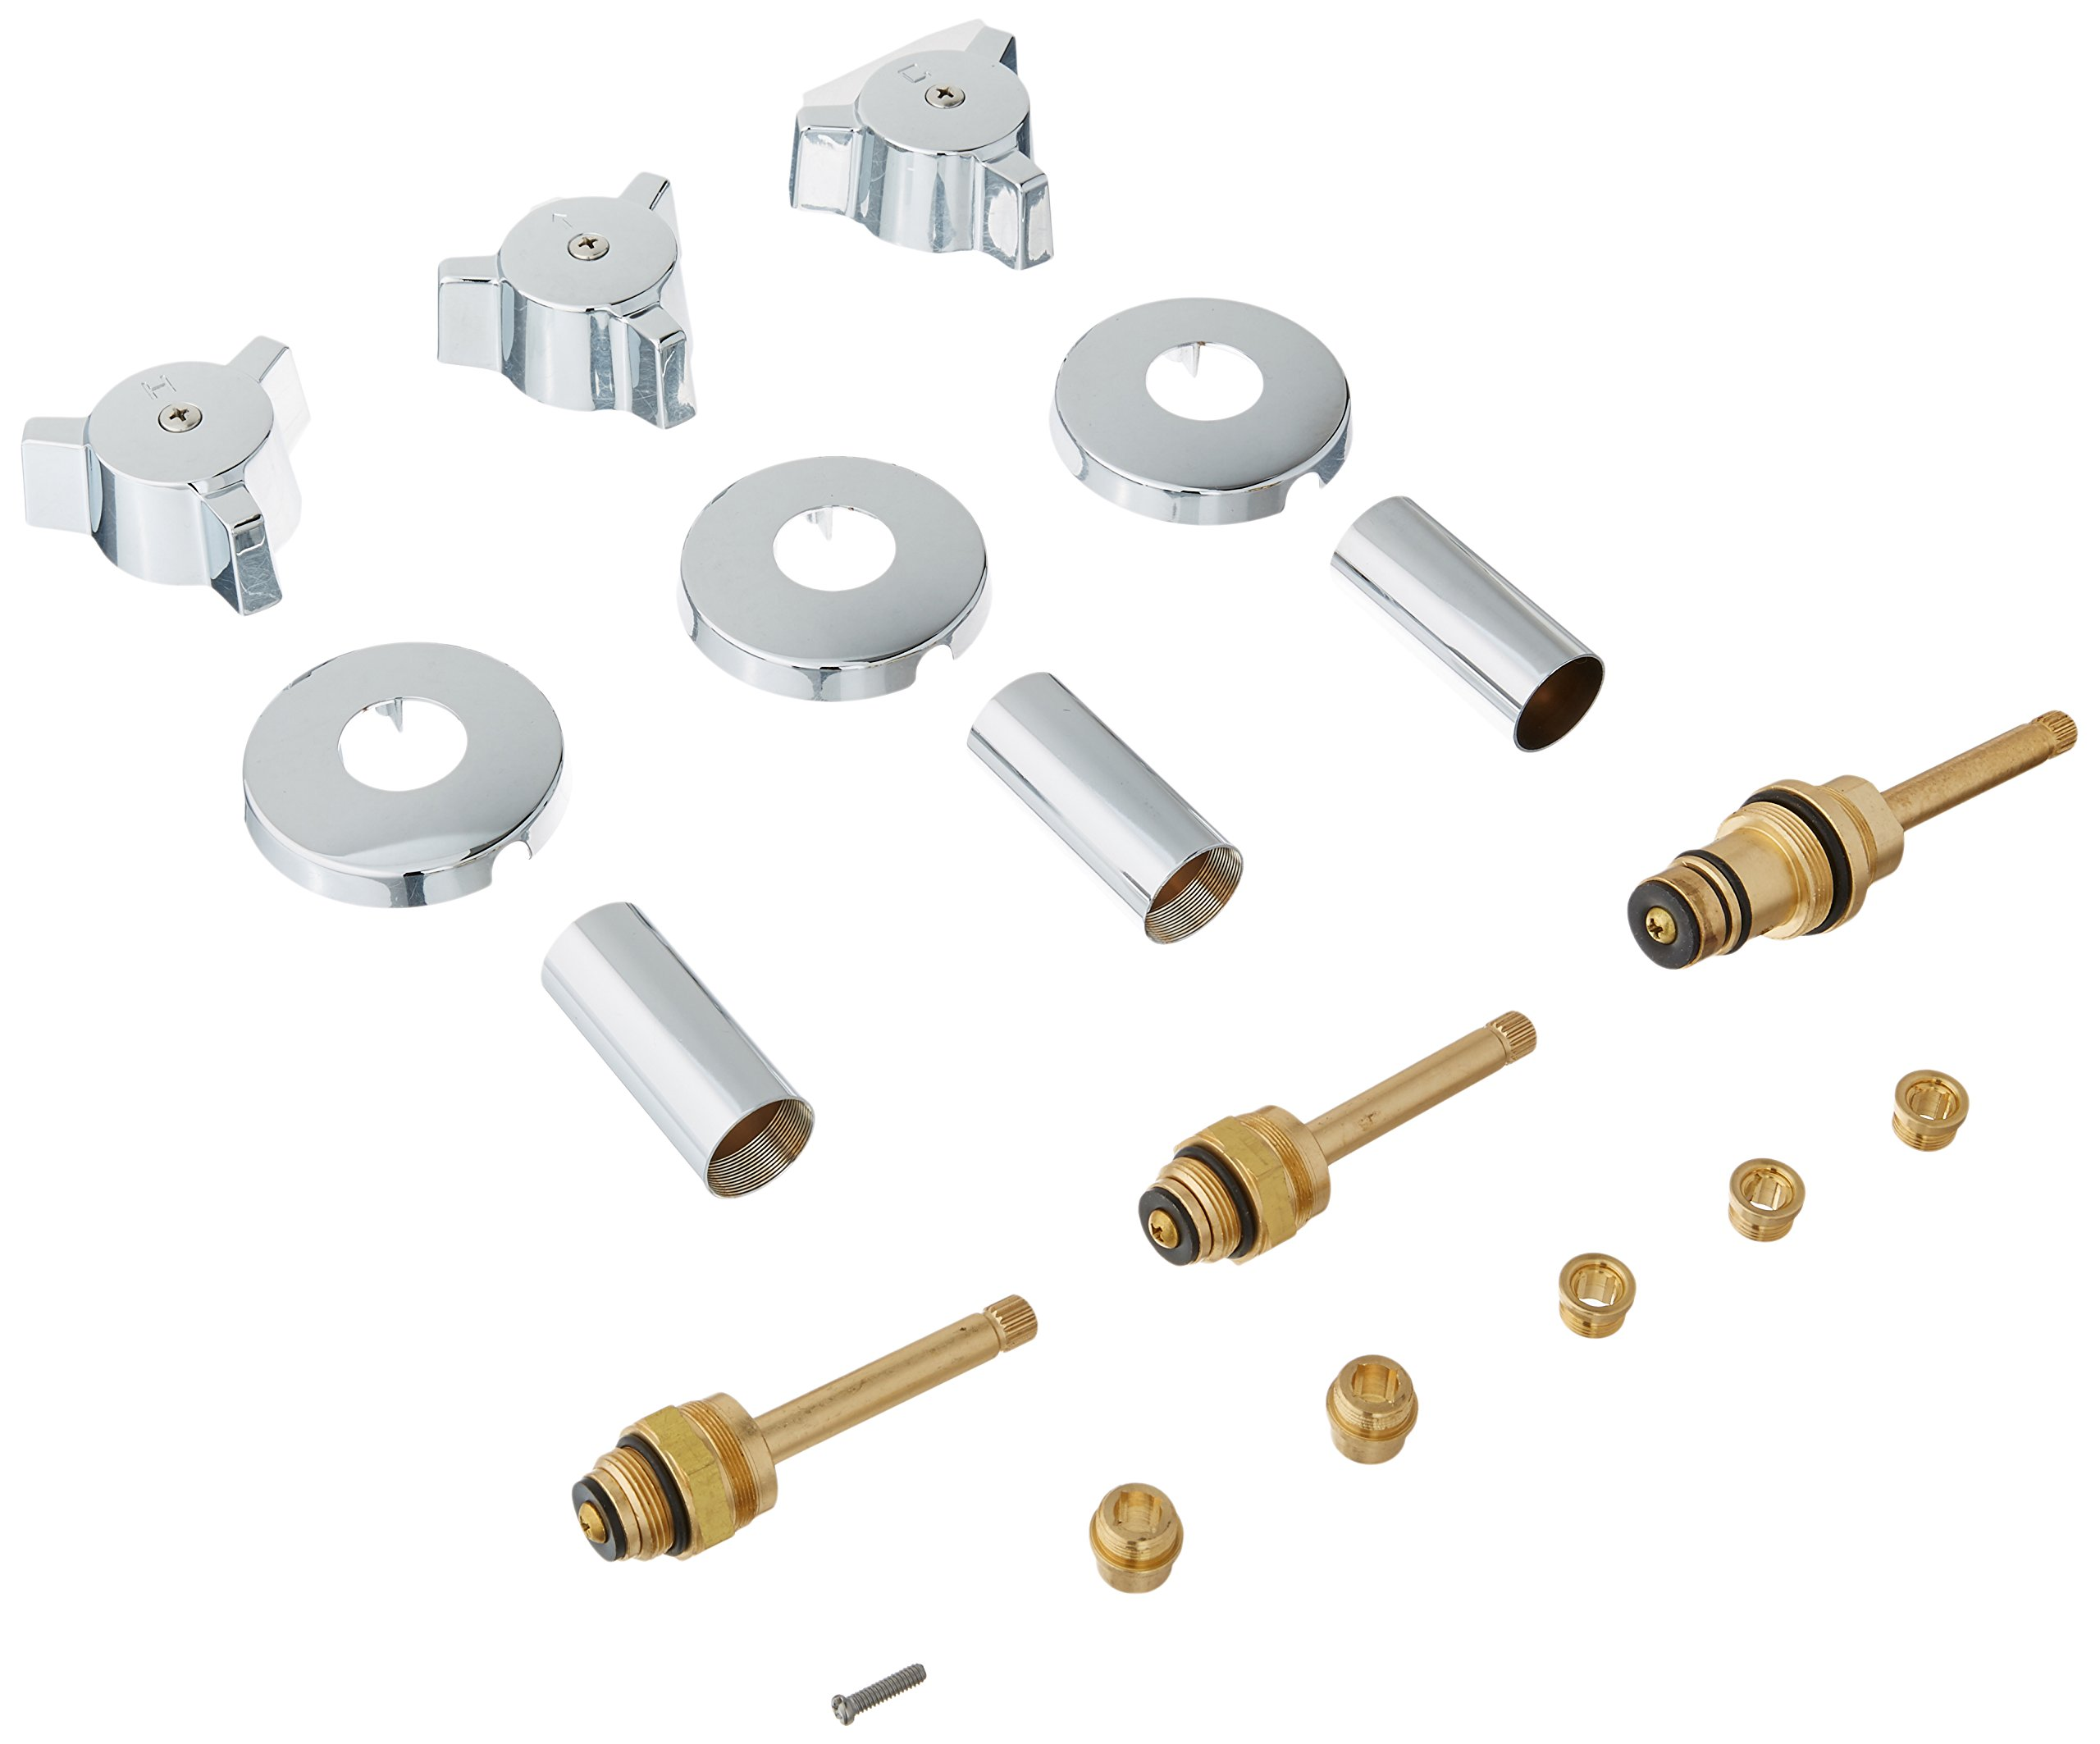 Kissler & Co. RBK1000 Indiana Brass Tub Rebuild Kit